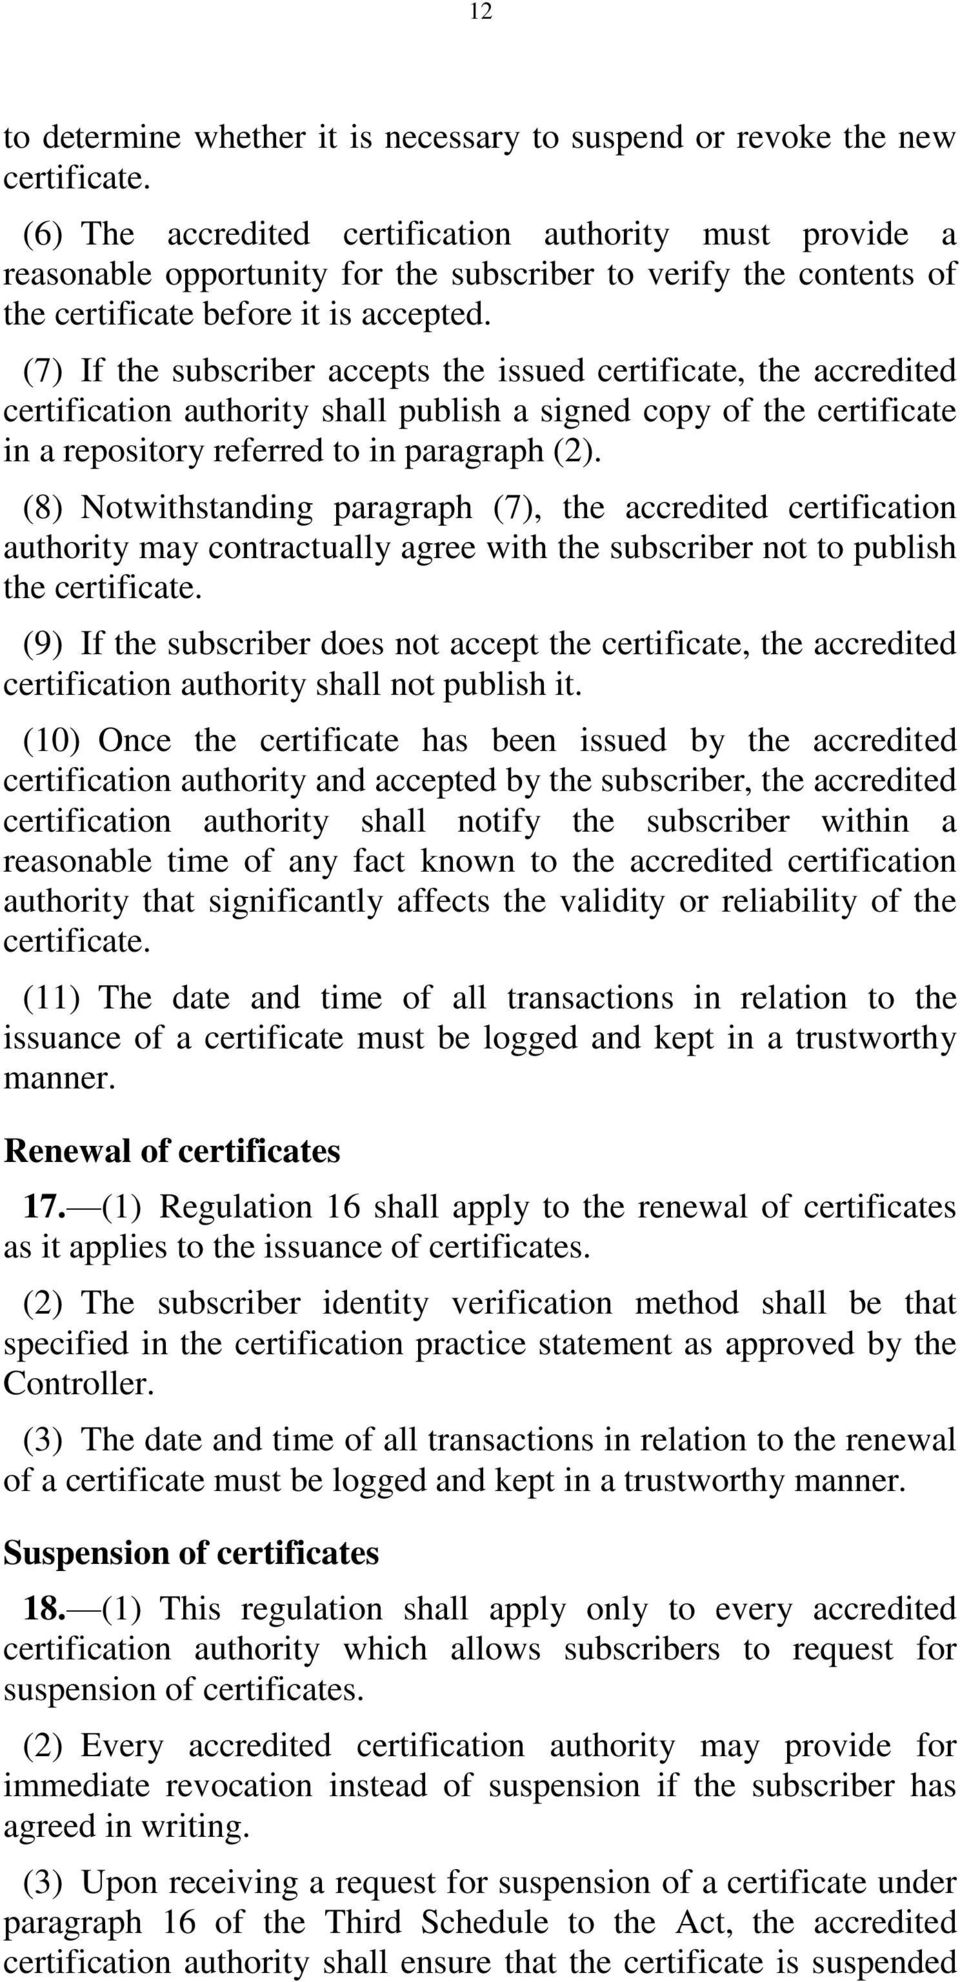 (7) If the subscriber accepts the issued certificate, the accredited certification authority shall publish a signed copy of the certificate in a repository referred to in paragraph (2).